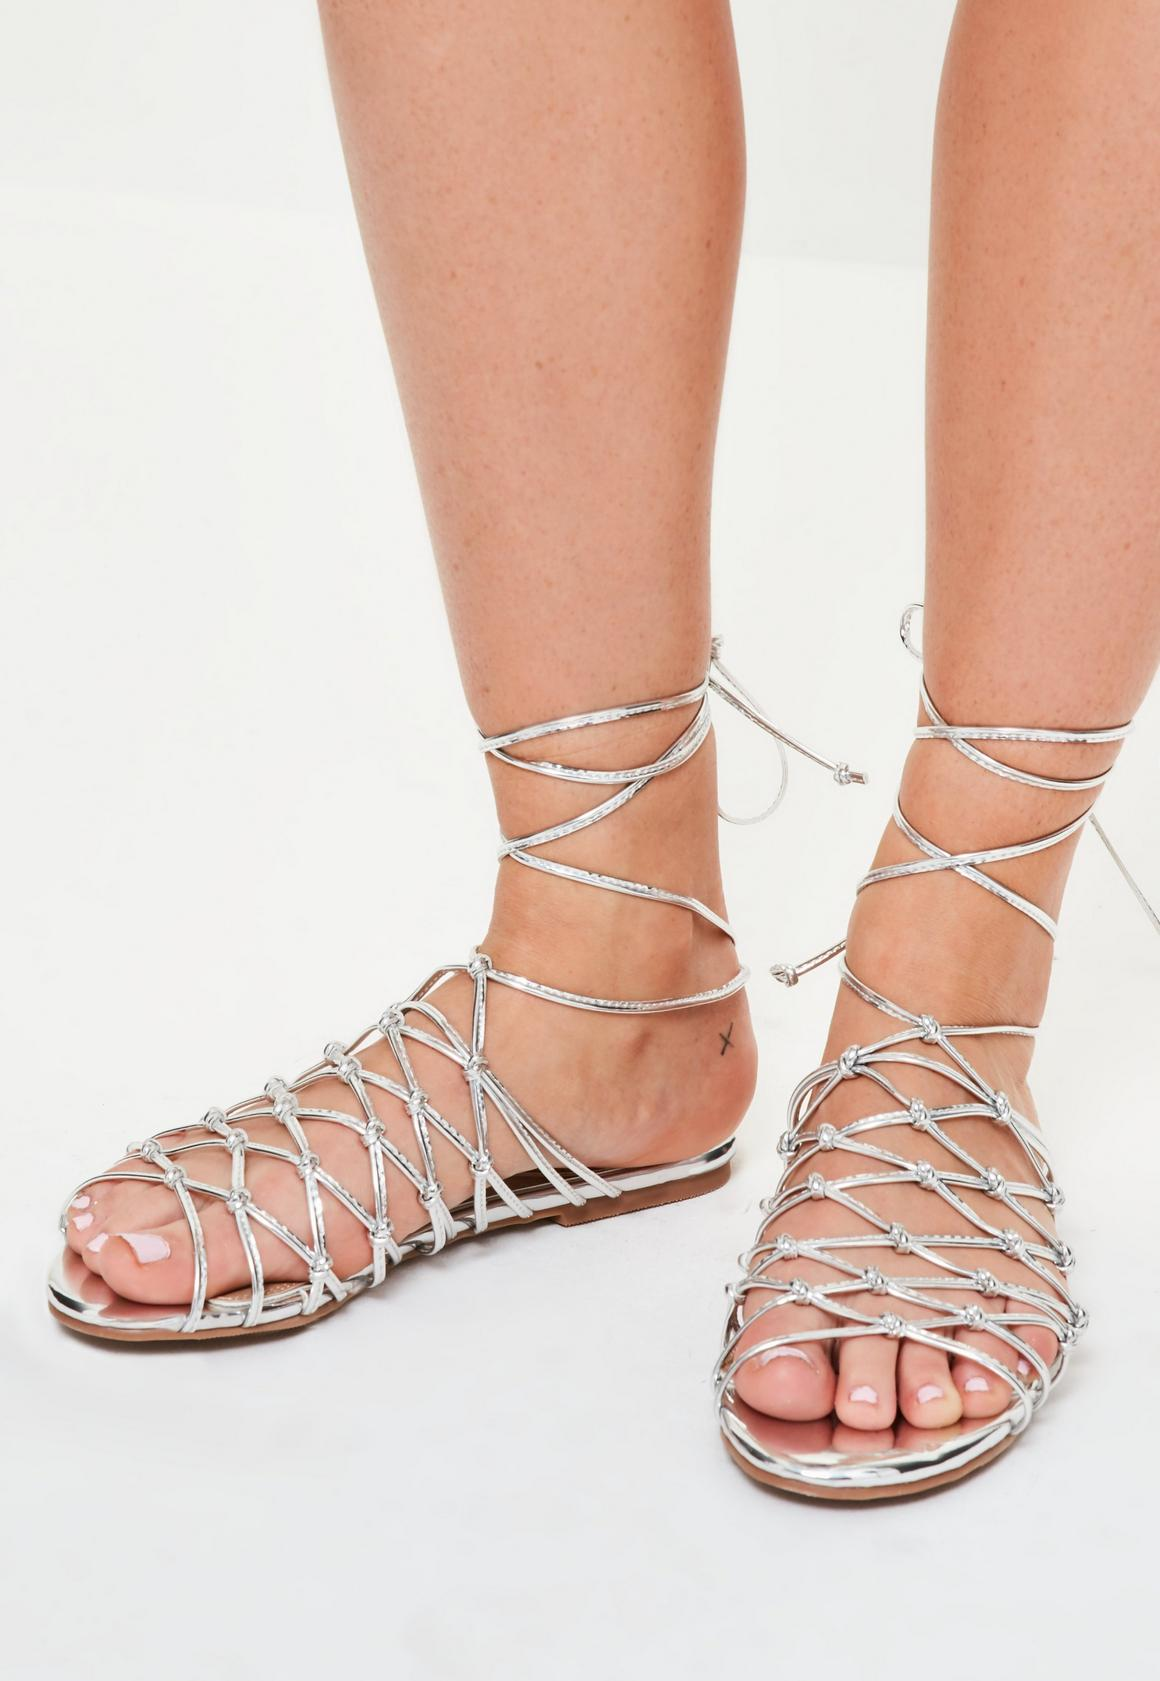 Flat sandals - Silver Knotted Gladiator Flat Sandals Silver Knotted Gladiator Flat Sandals